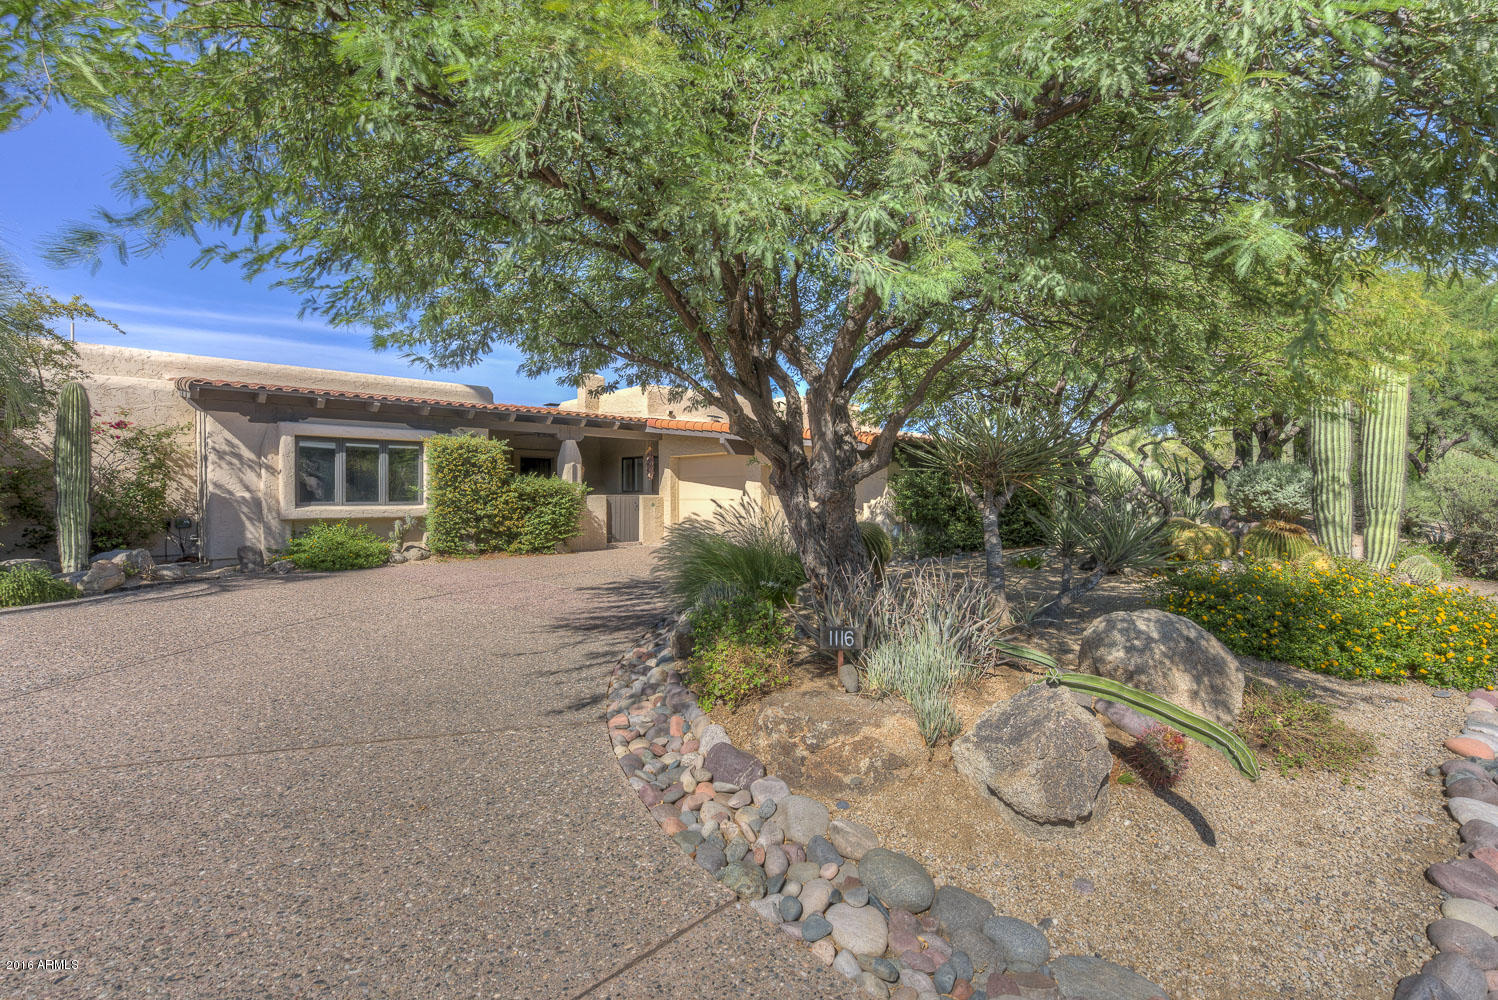 1116 S Ocotillo Circle, Carefree AZ 85377 - Photo 1